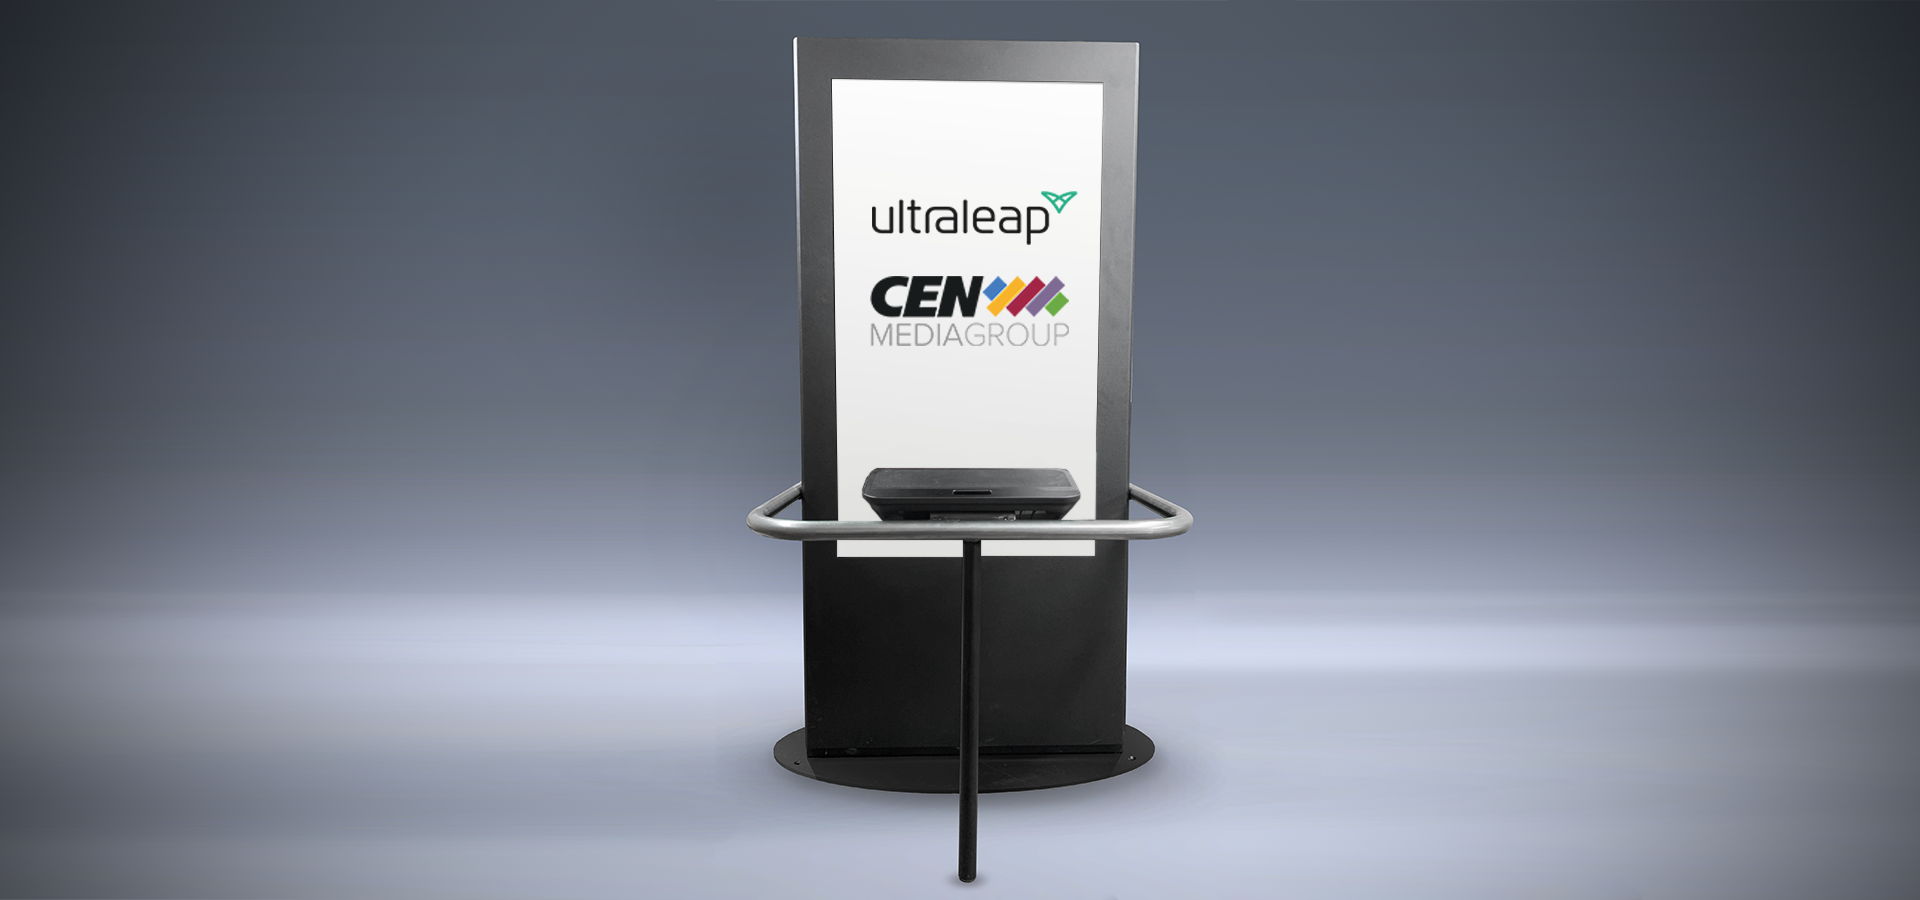 CEN and Ultraleap touchless advertising technology at movie theater